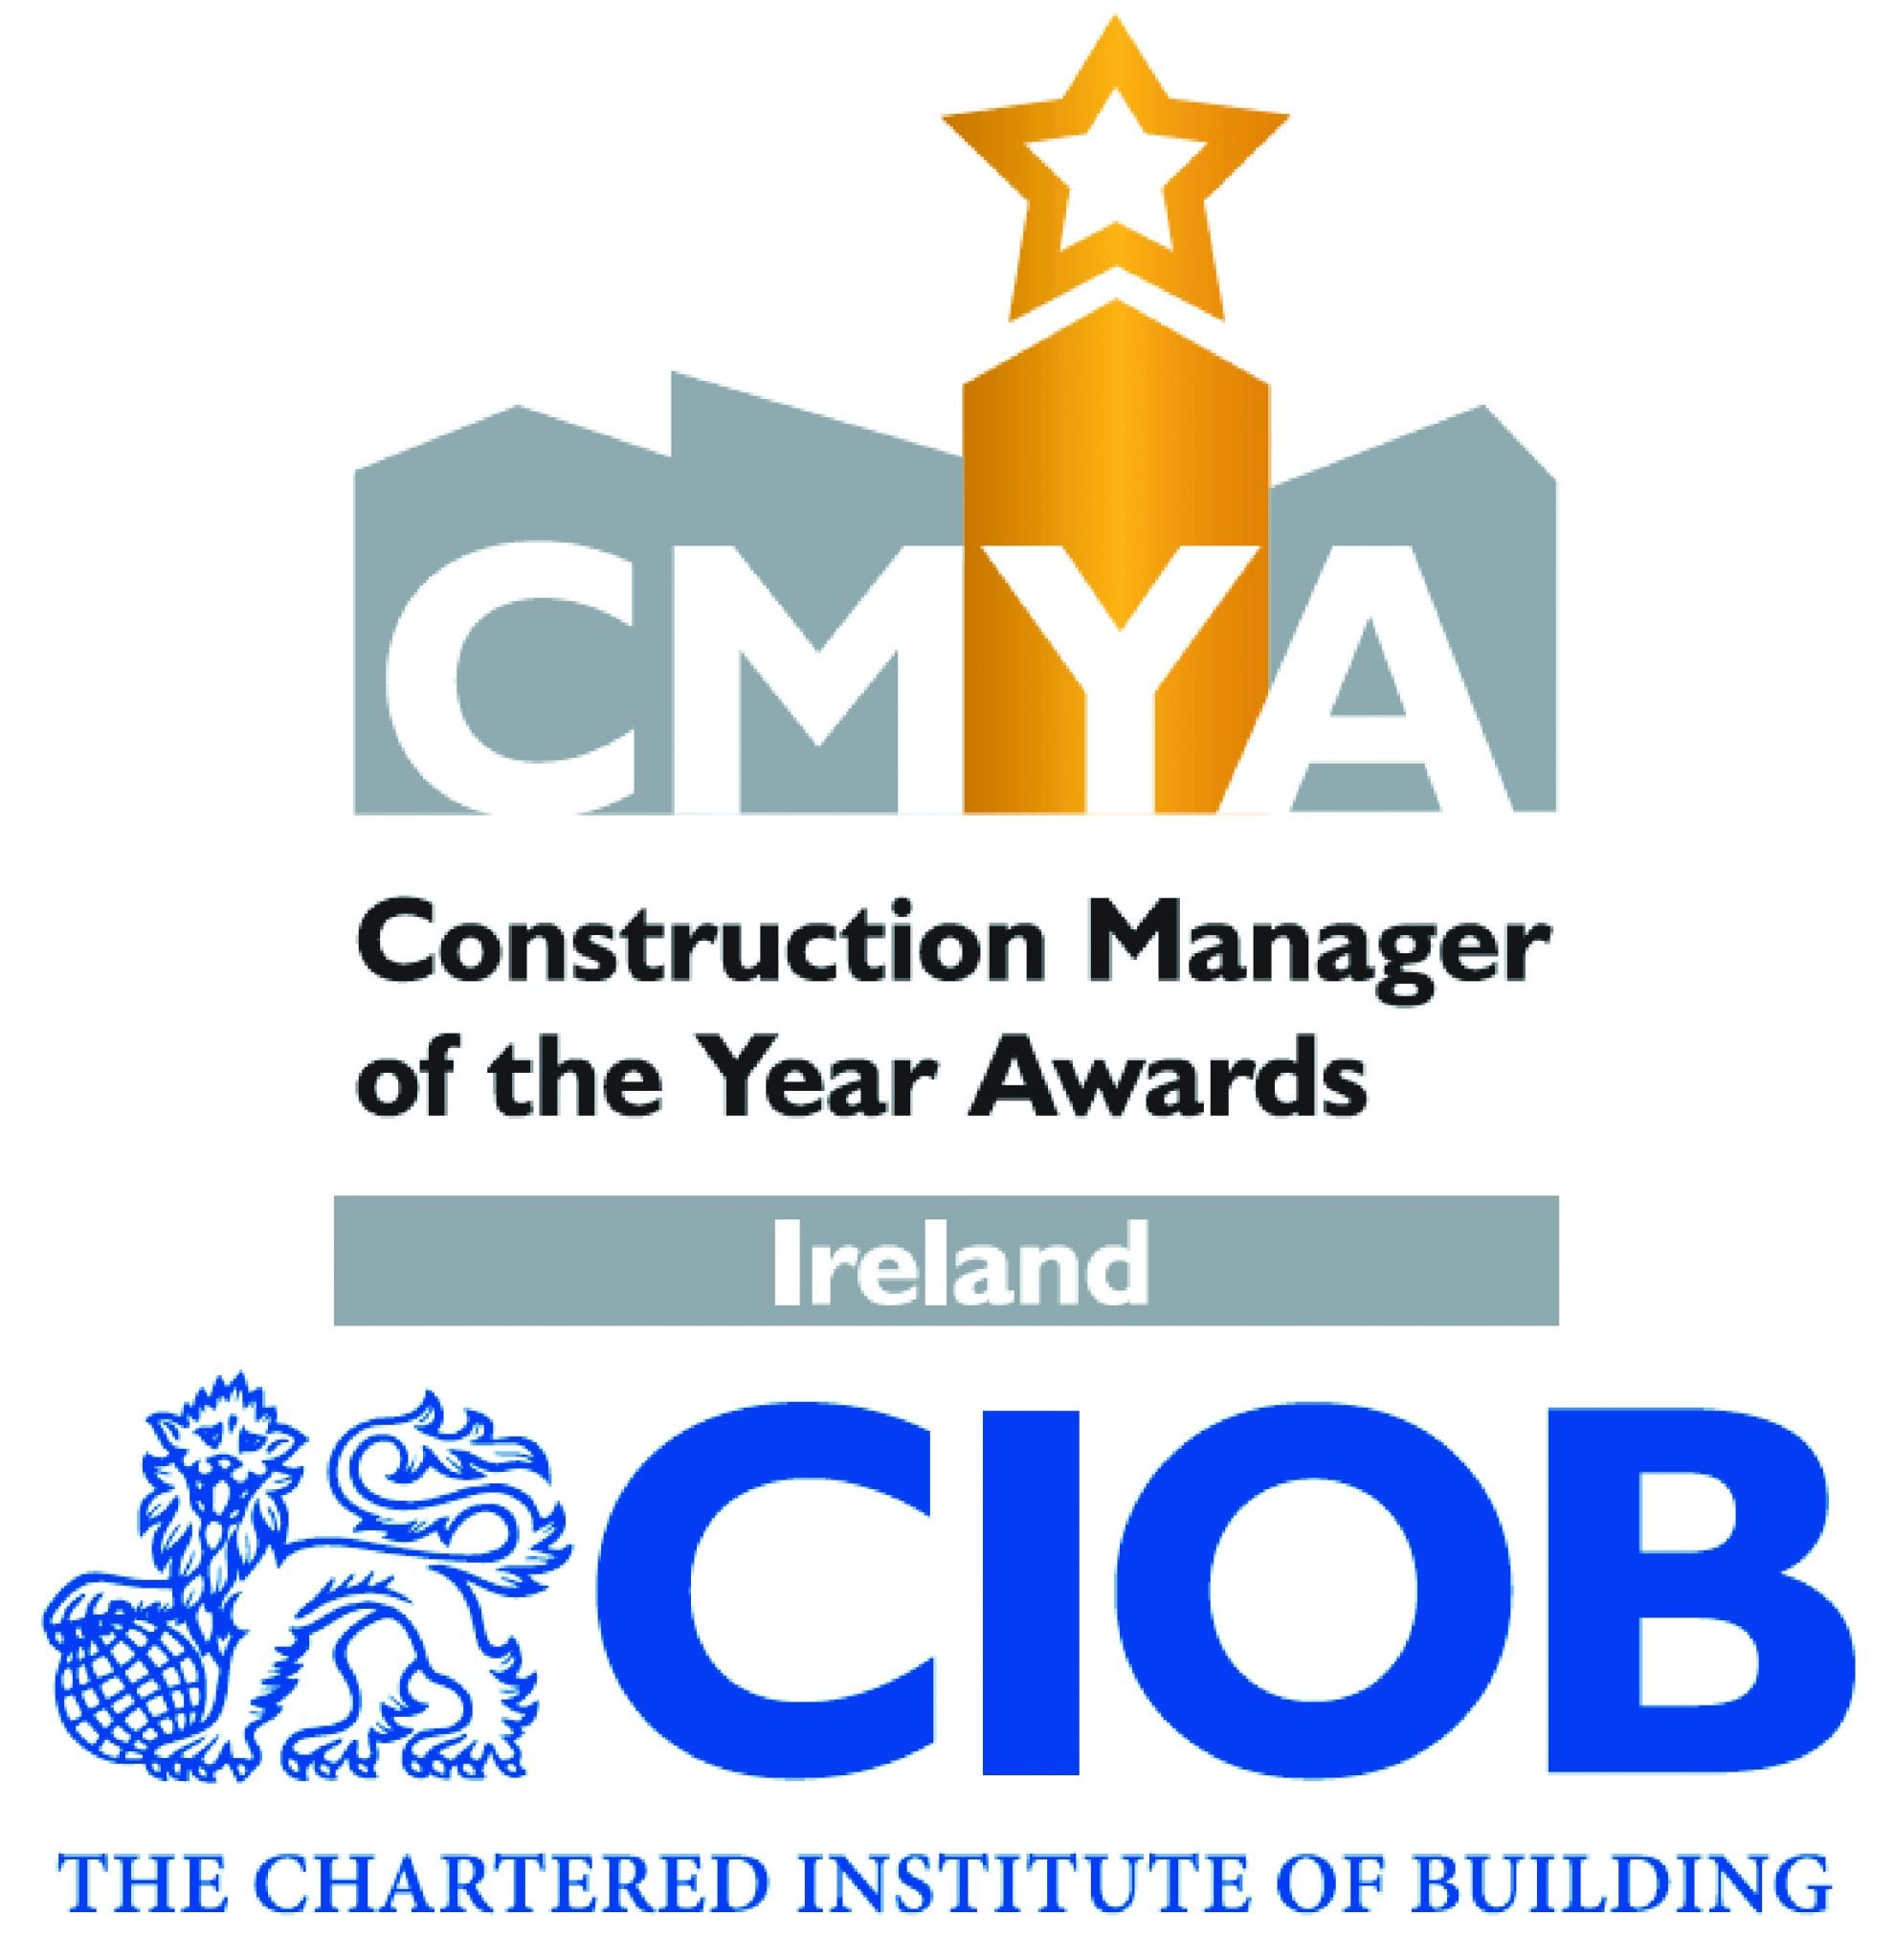 CIOB Construction Manager of the Year Gold Award